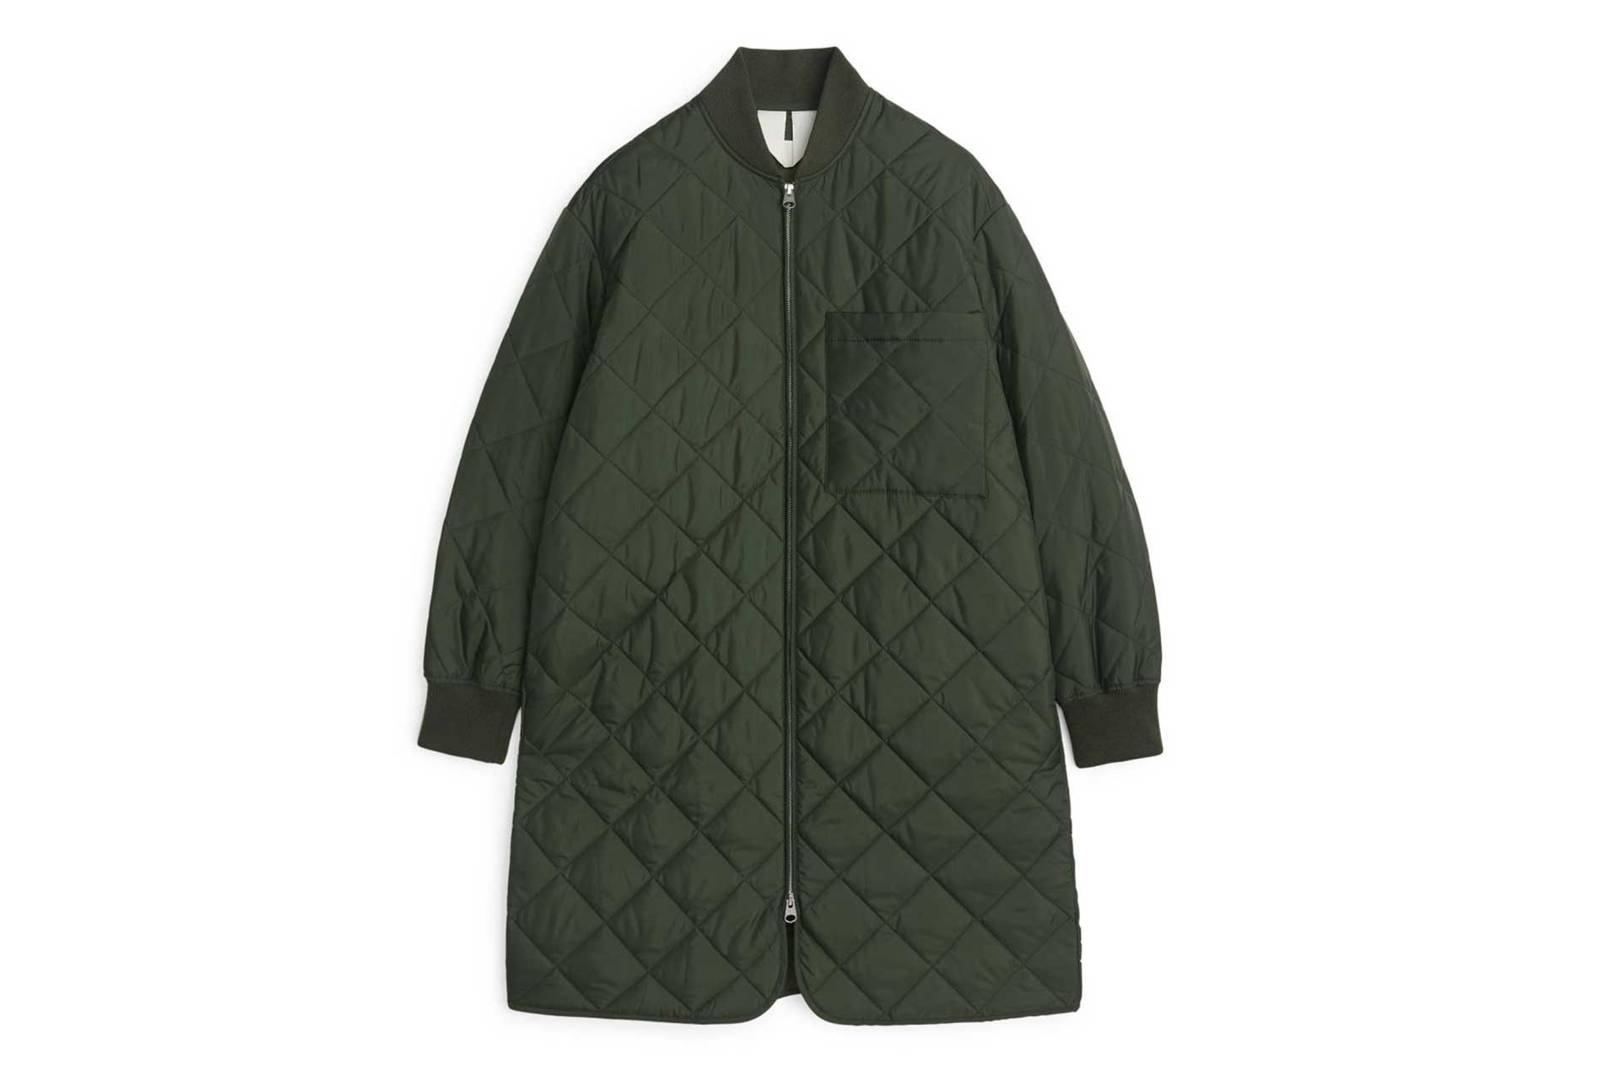 5f2bf3014fd The Best High Street Winter Coats To Buy For 2018